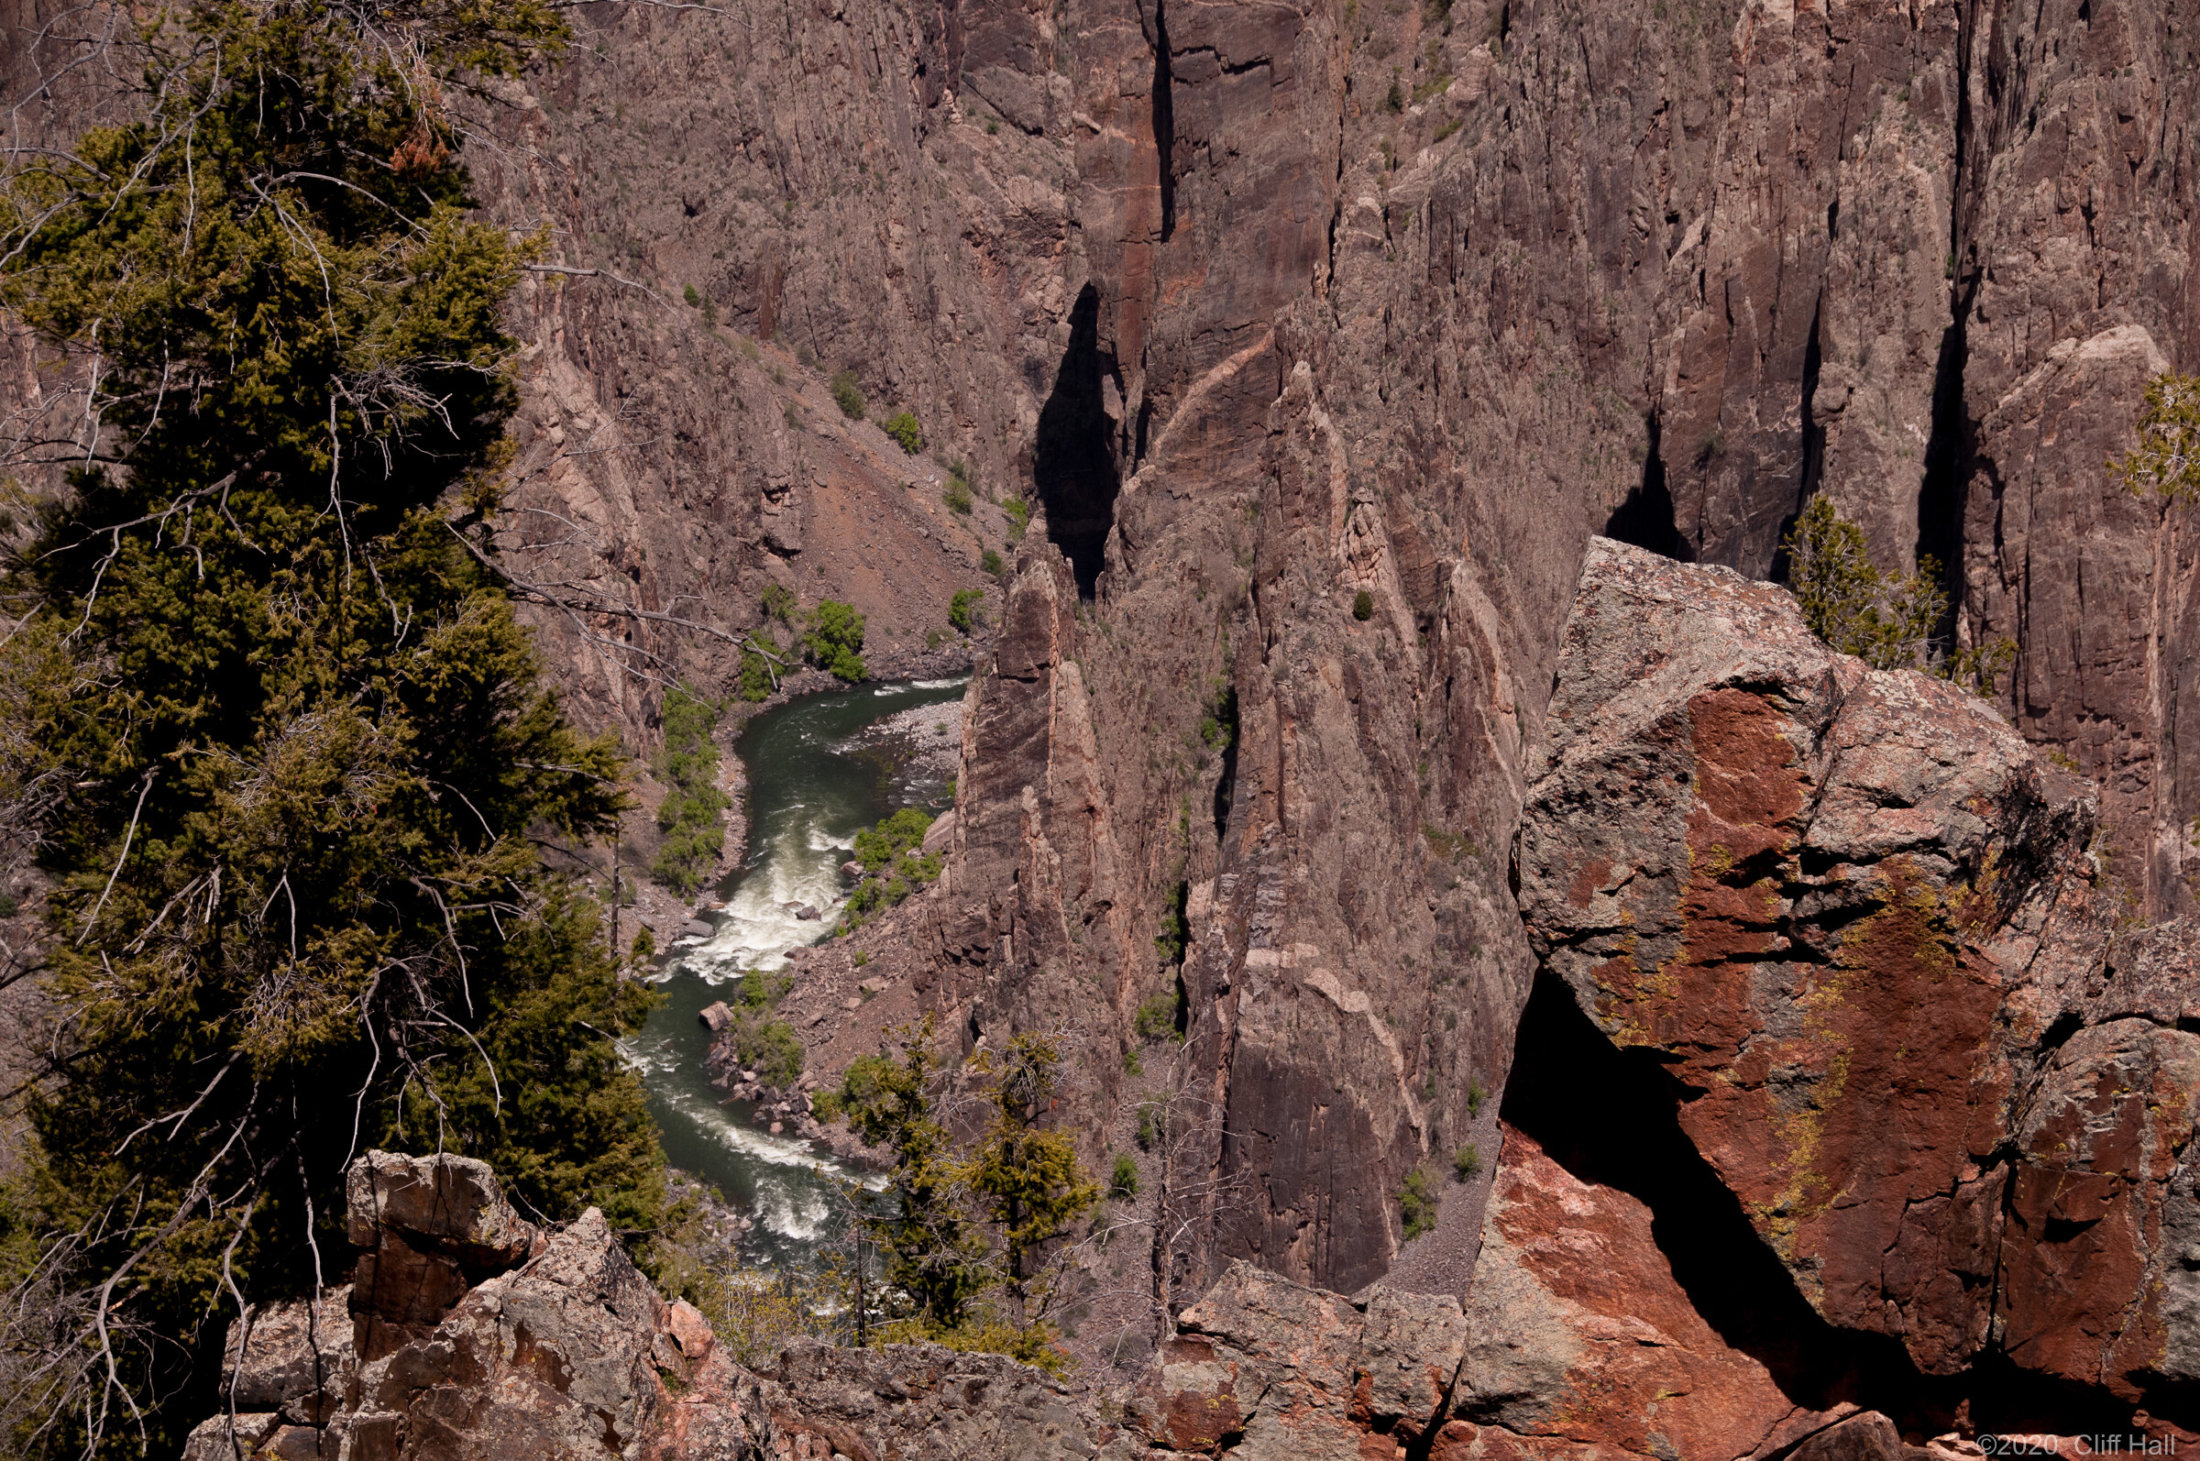 Black Canyon of the Gunnison NP, CO